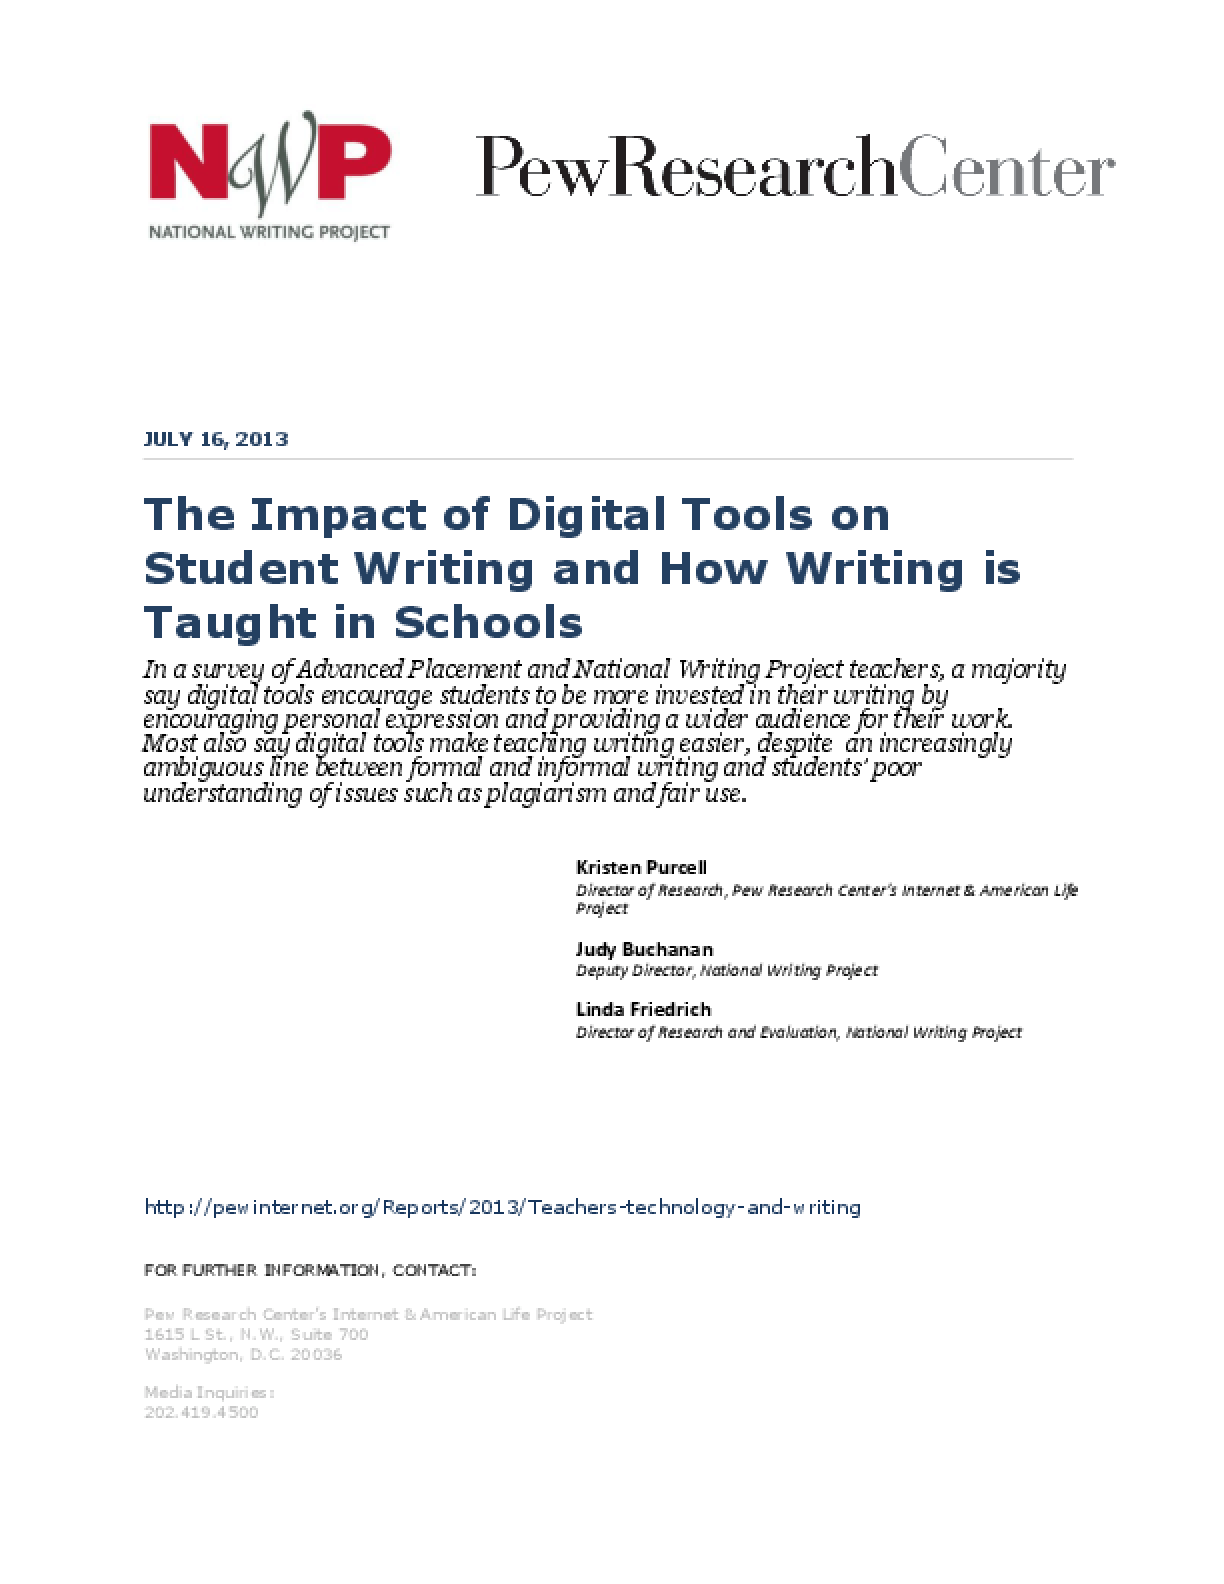 The Impact of Digital Tools on Student Writing and How Writing is Taught in Schools